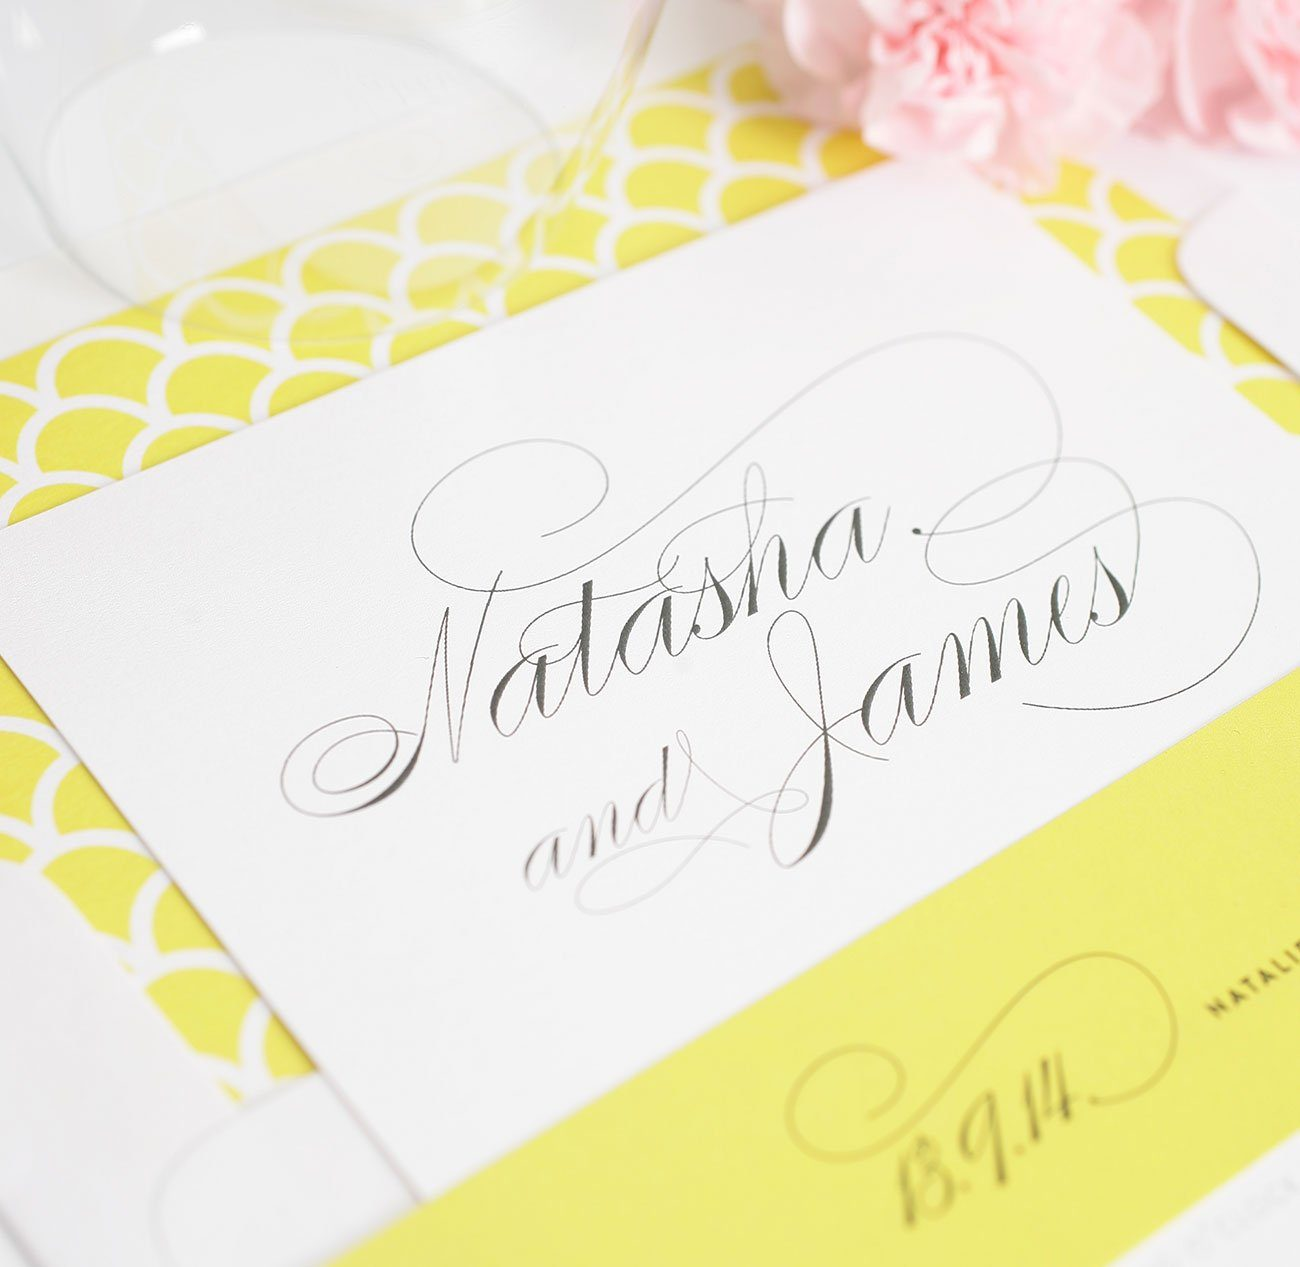 Yellow wedding invitations with script names